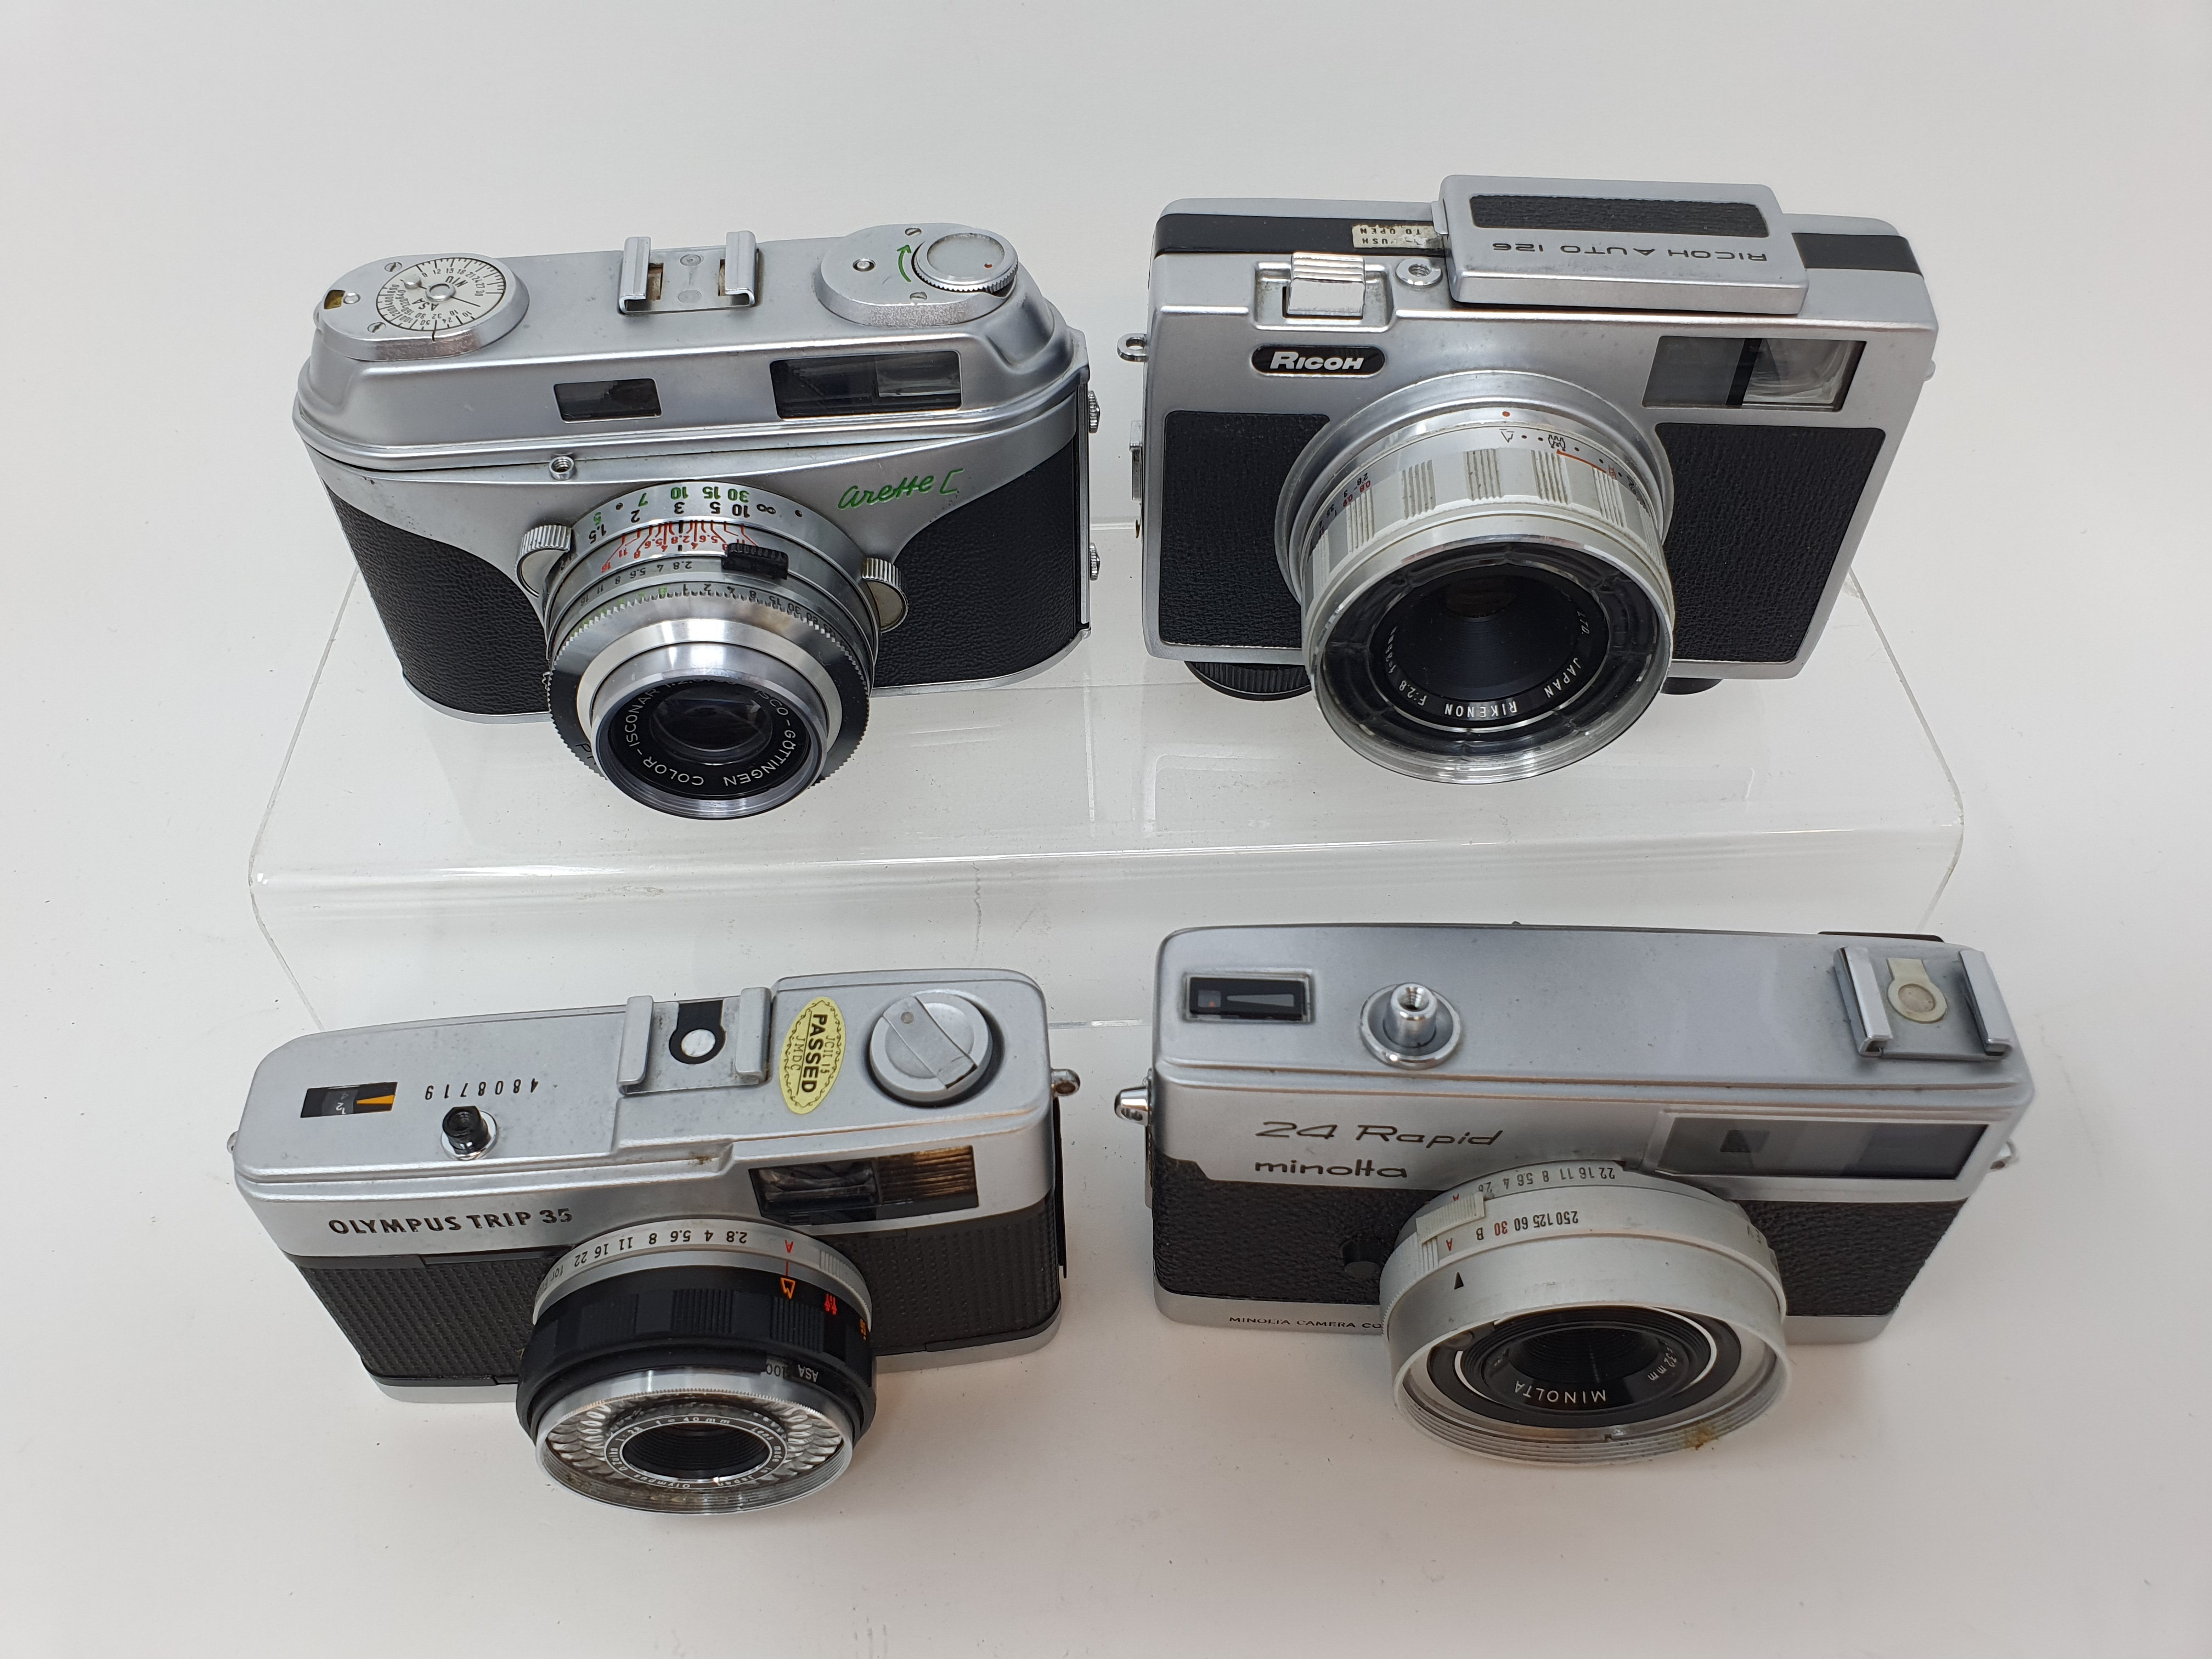 A Minolta 24 Rapid camera, an Arette C camera, a Ricoh Auto 126 camera, and an Olympus Trip 35 - Image 3 of 4